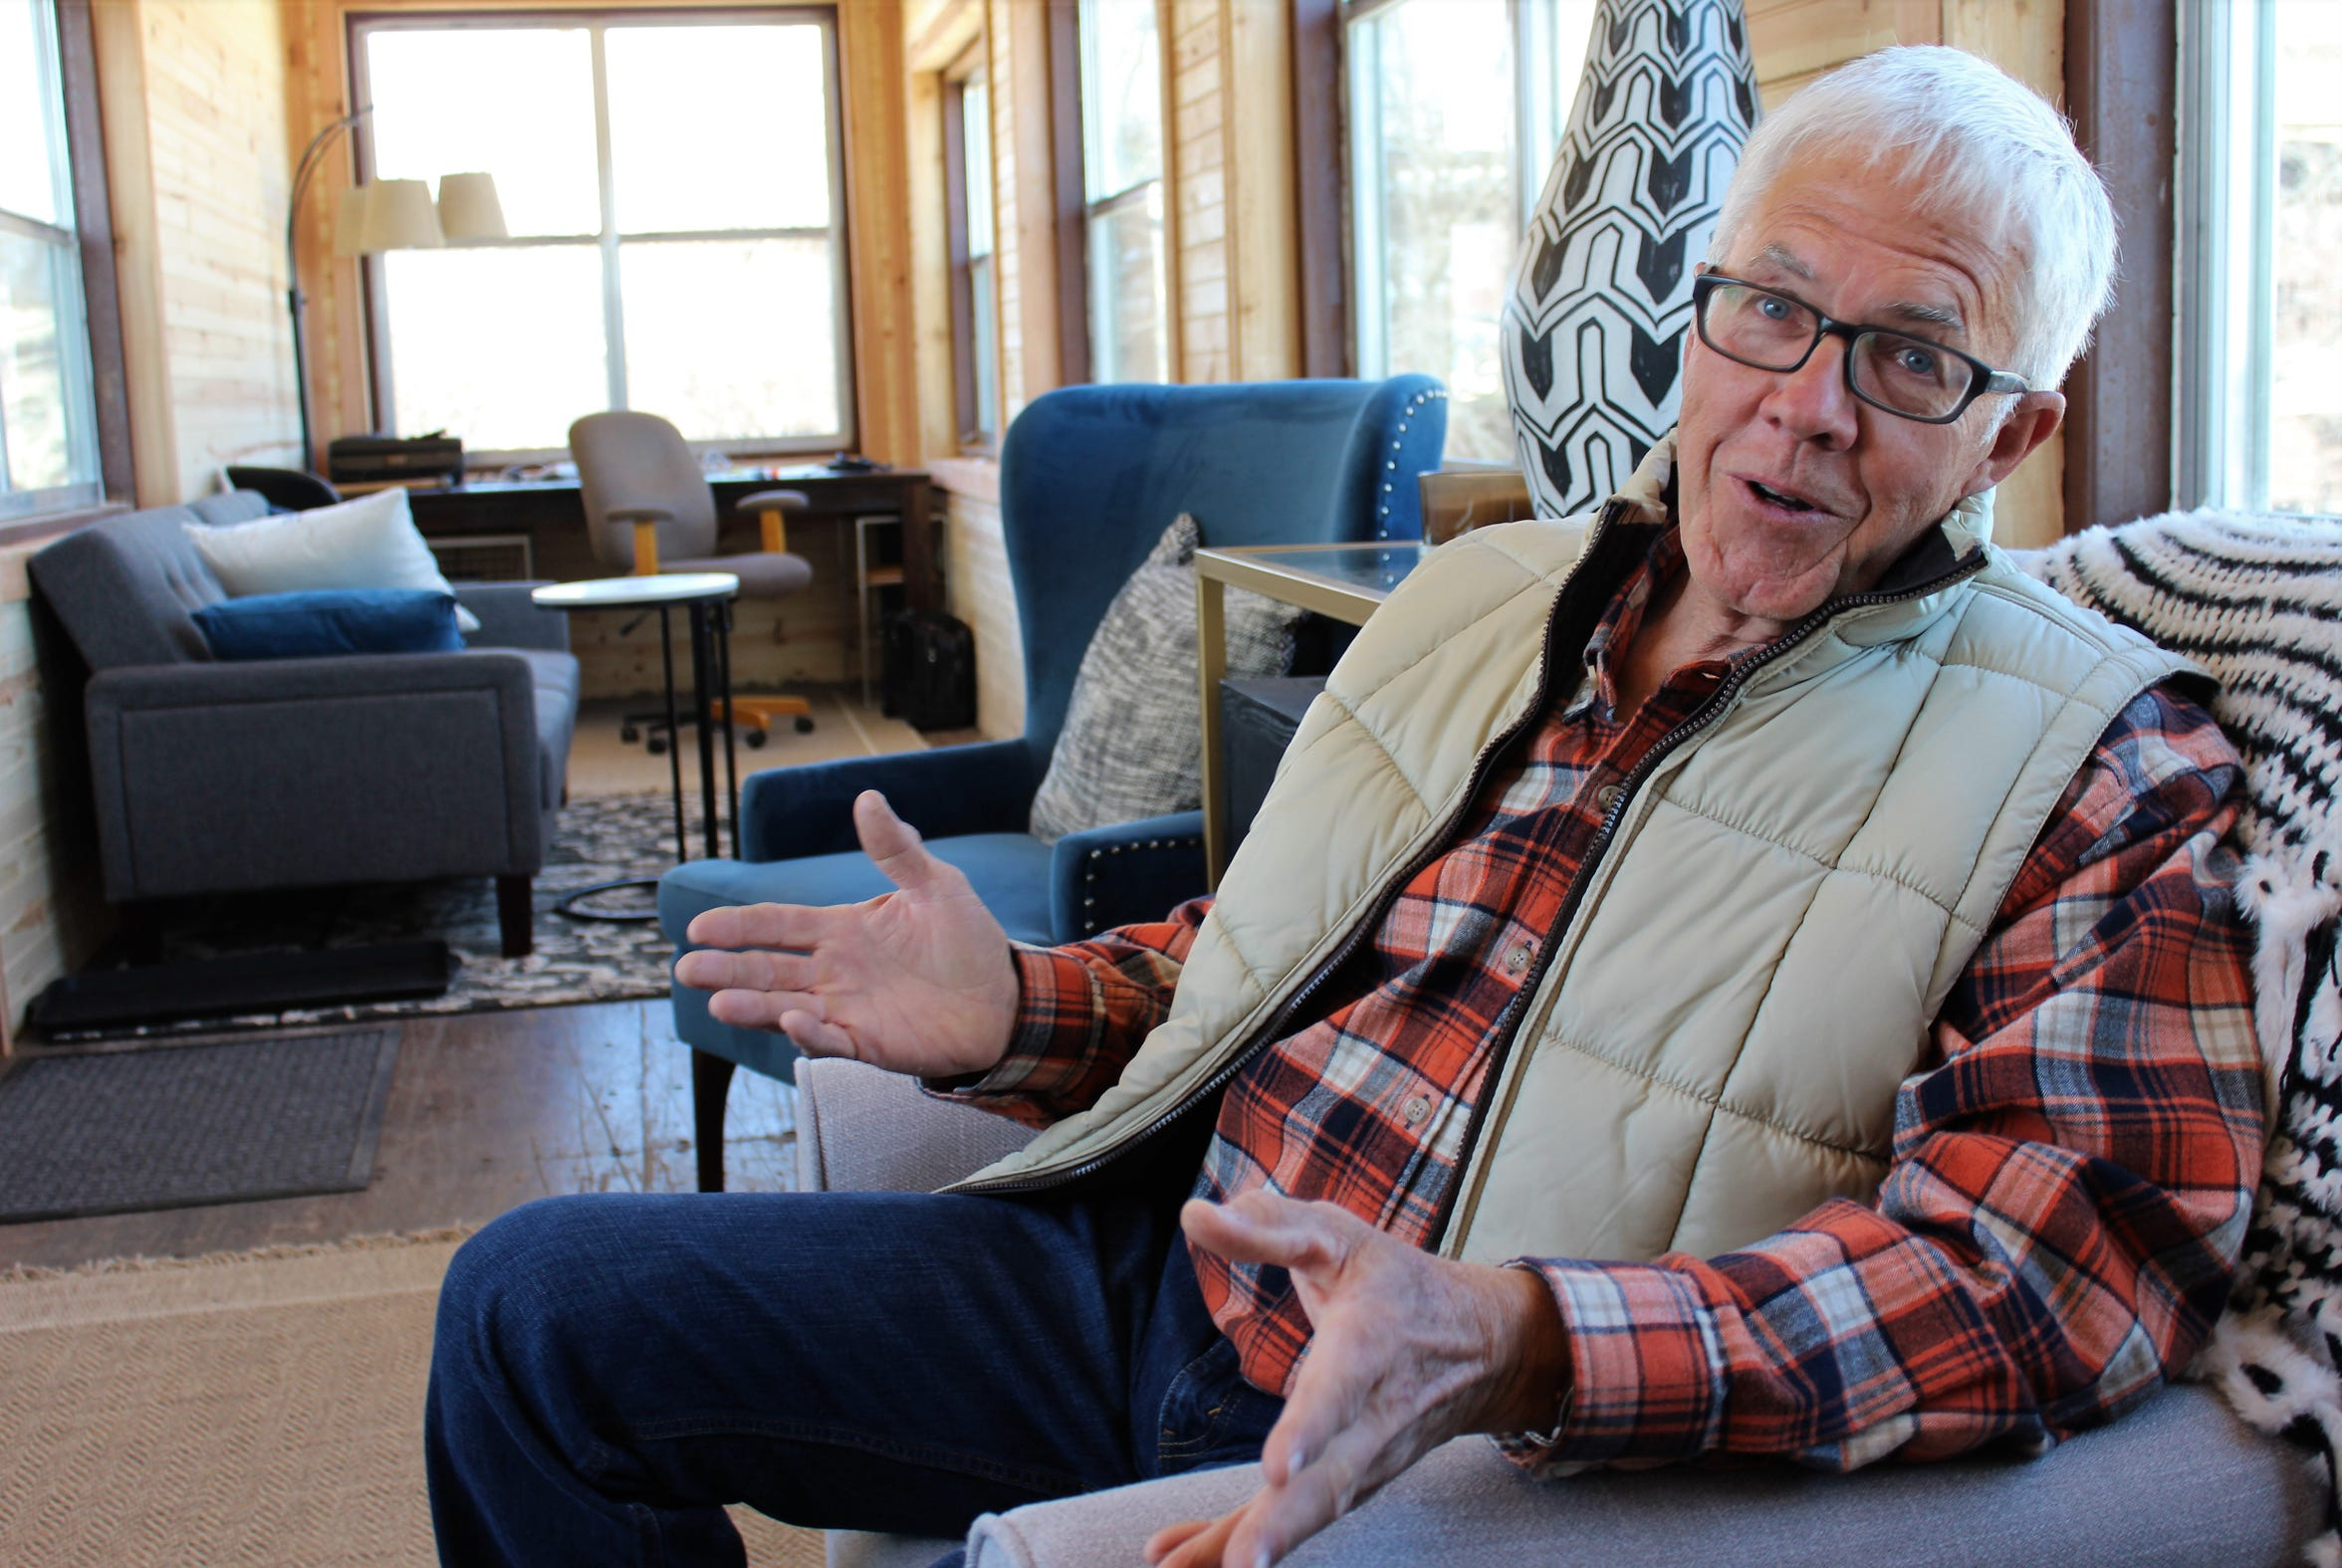 Bishop Powell, longtime fiddler in Lariat and the father of singer and Outlaws & Legends Music Fest founder Mark Powell, has his own music story.